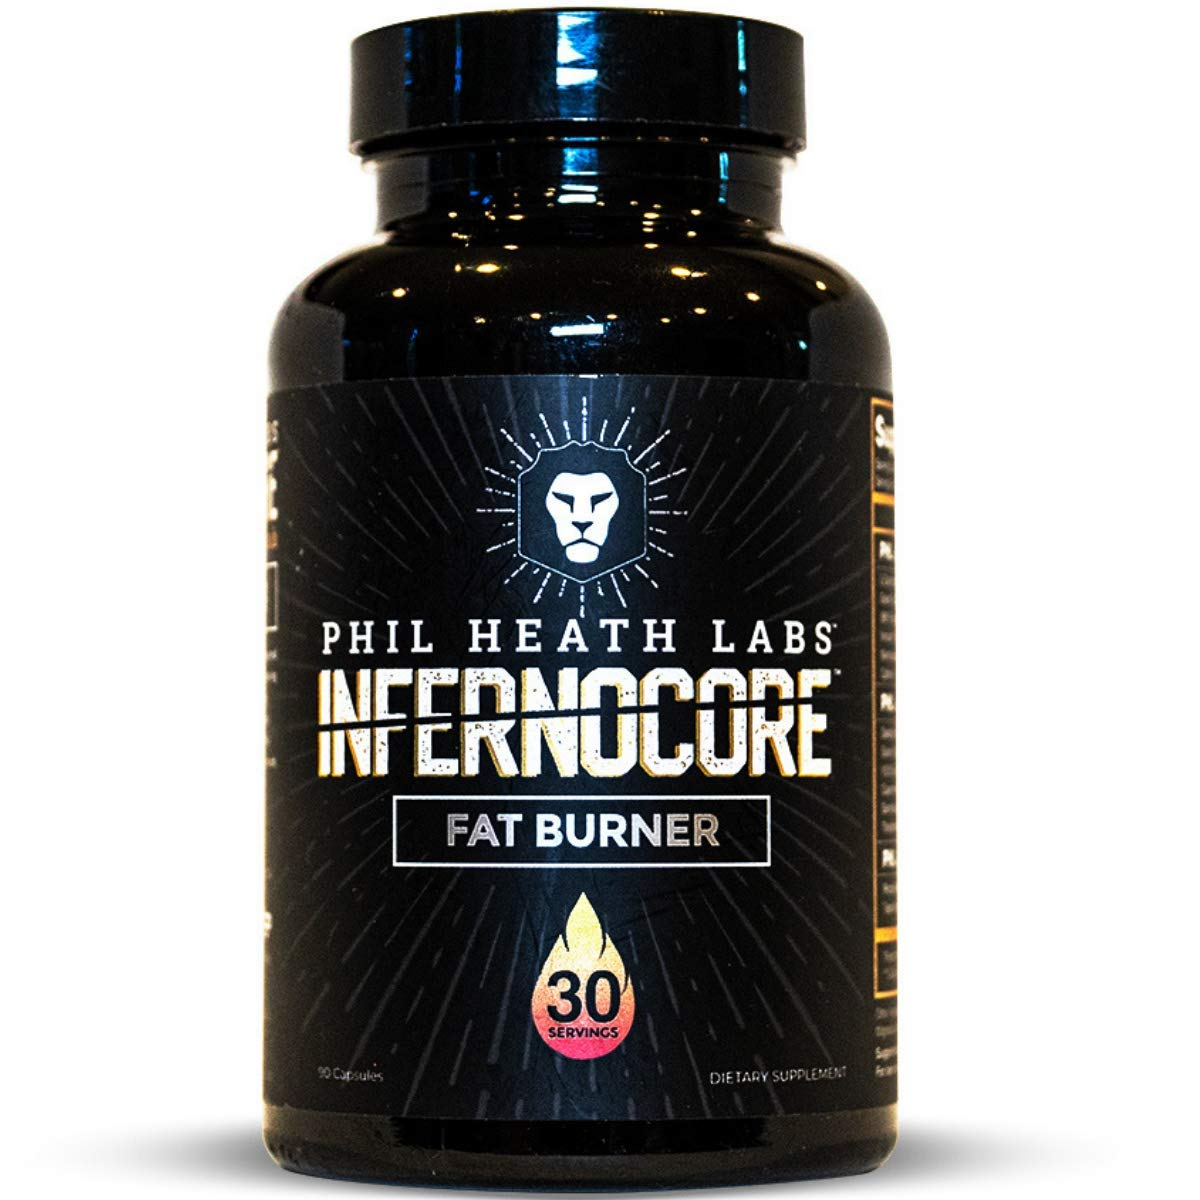 Phil Heath Labs InfernoCore Thermogenic Fat Burner Supplement | Promotes Weight & Appetite Suppressant with L-Carnitine & Green Tea Leaf | 150mg Caffeine to Boost Energy & Metabolism | 90 Diet Pills by Phil Heath Labs